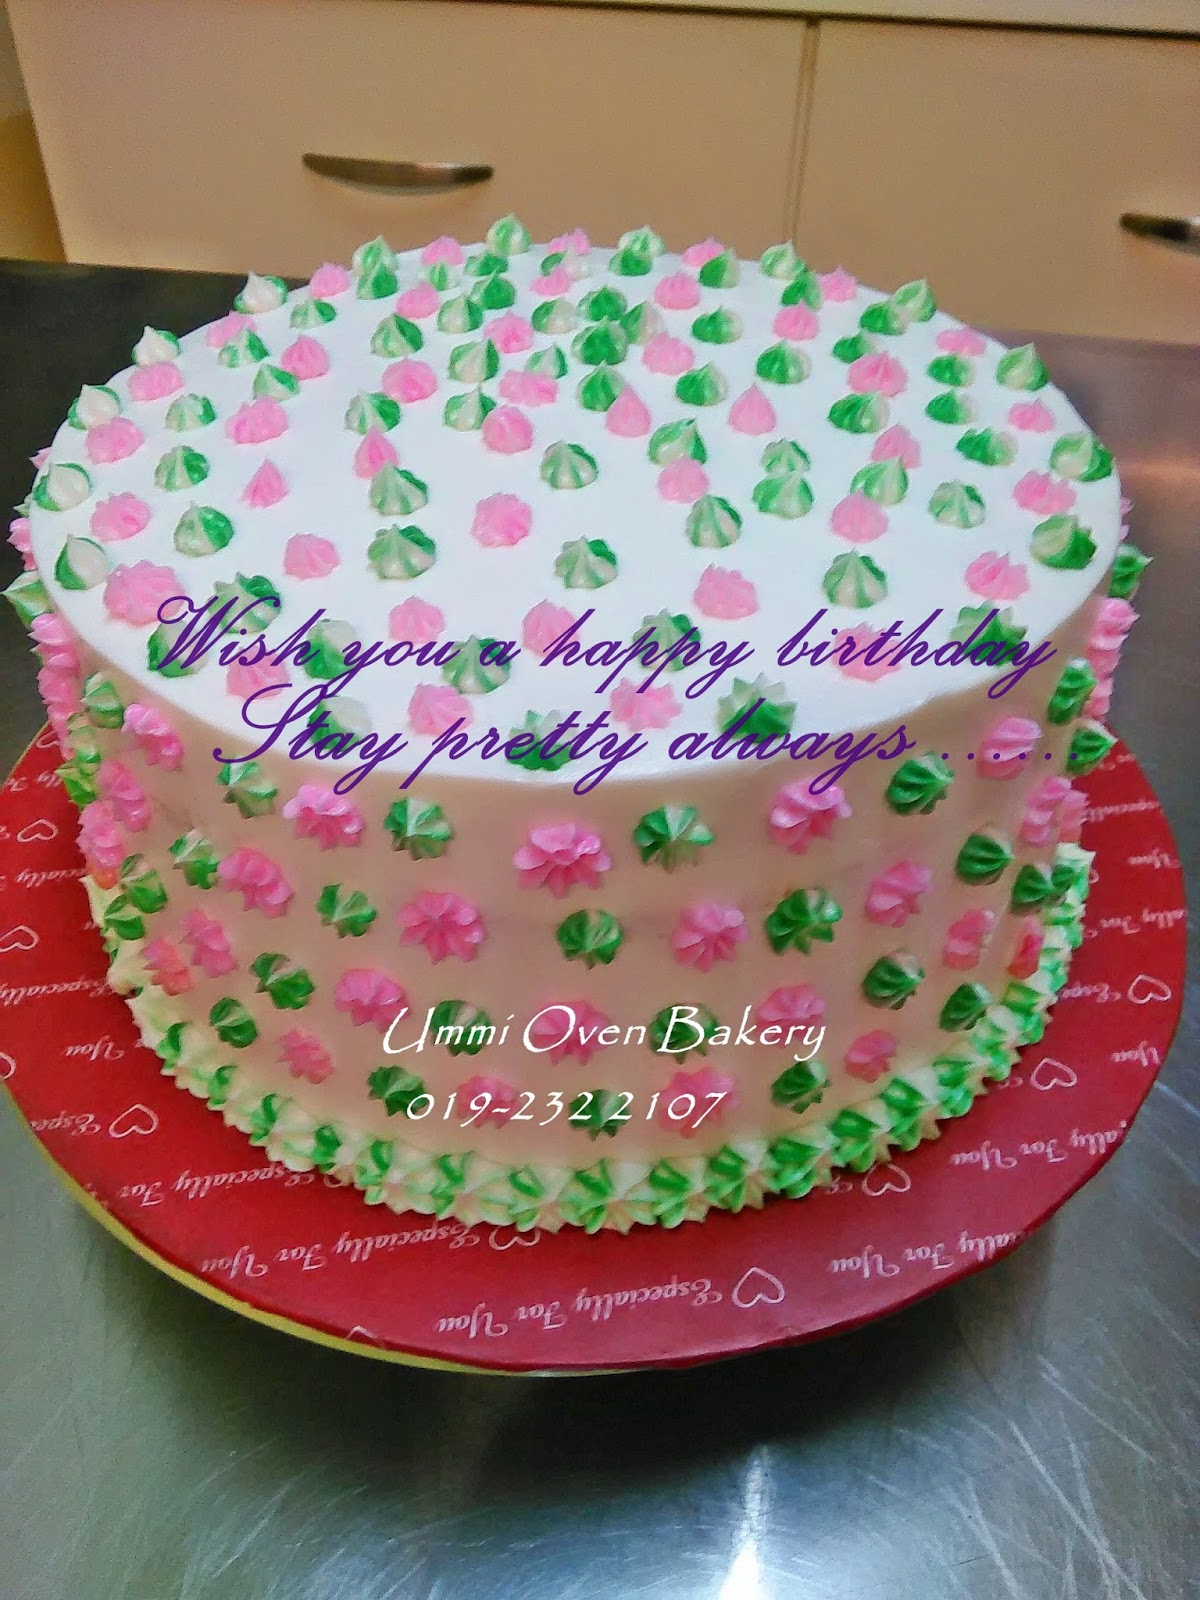 Birthday Cake Images And Msg : Cakekasih Ummi: BIRTHDAY CAKE